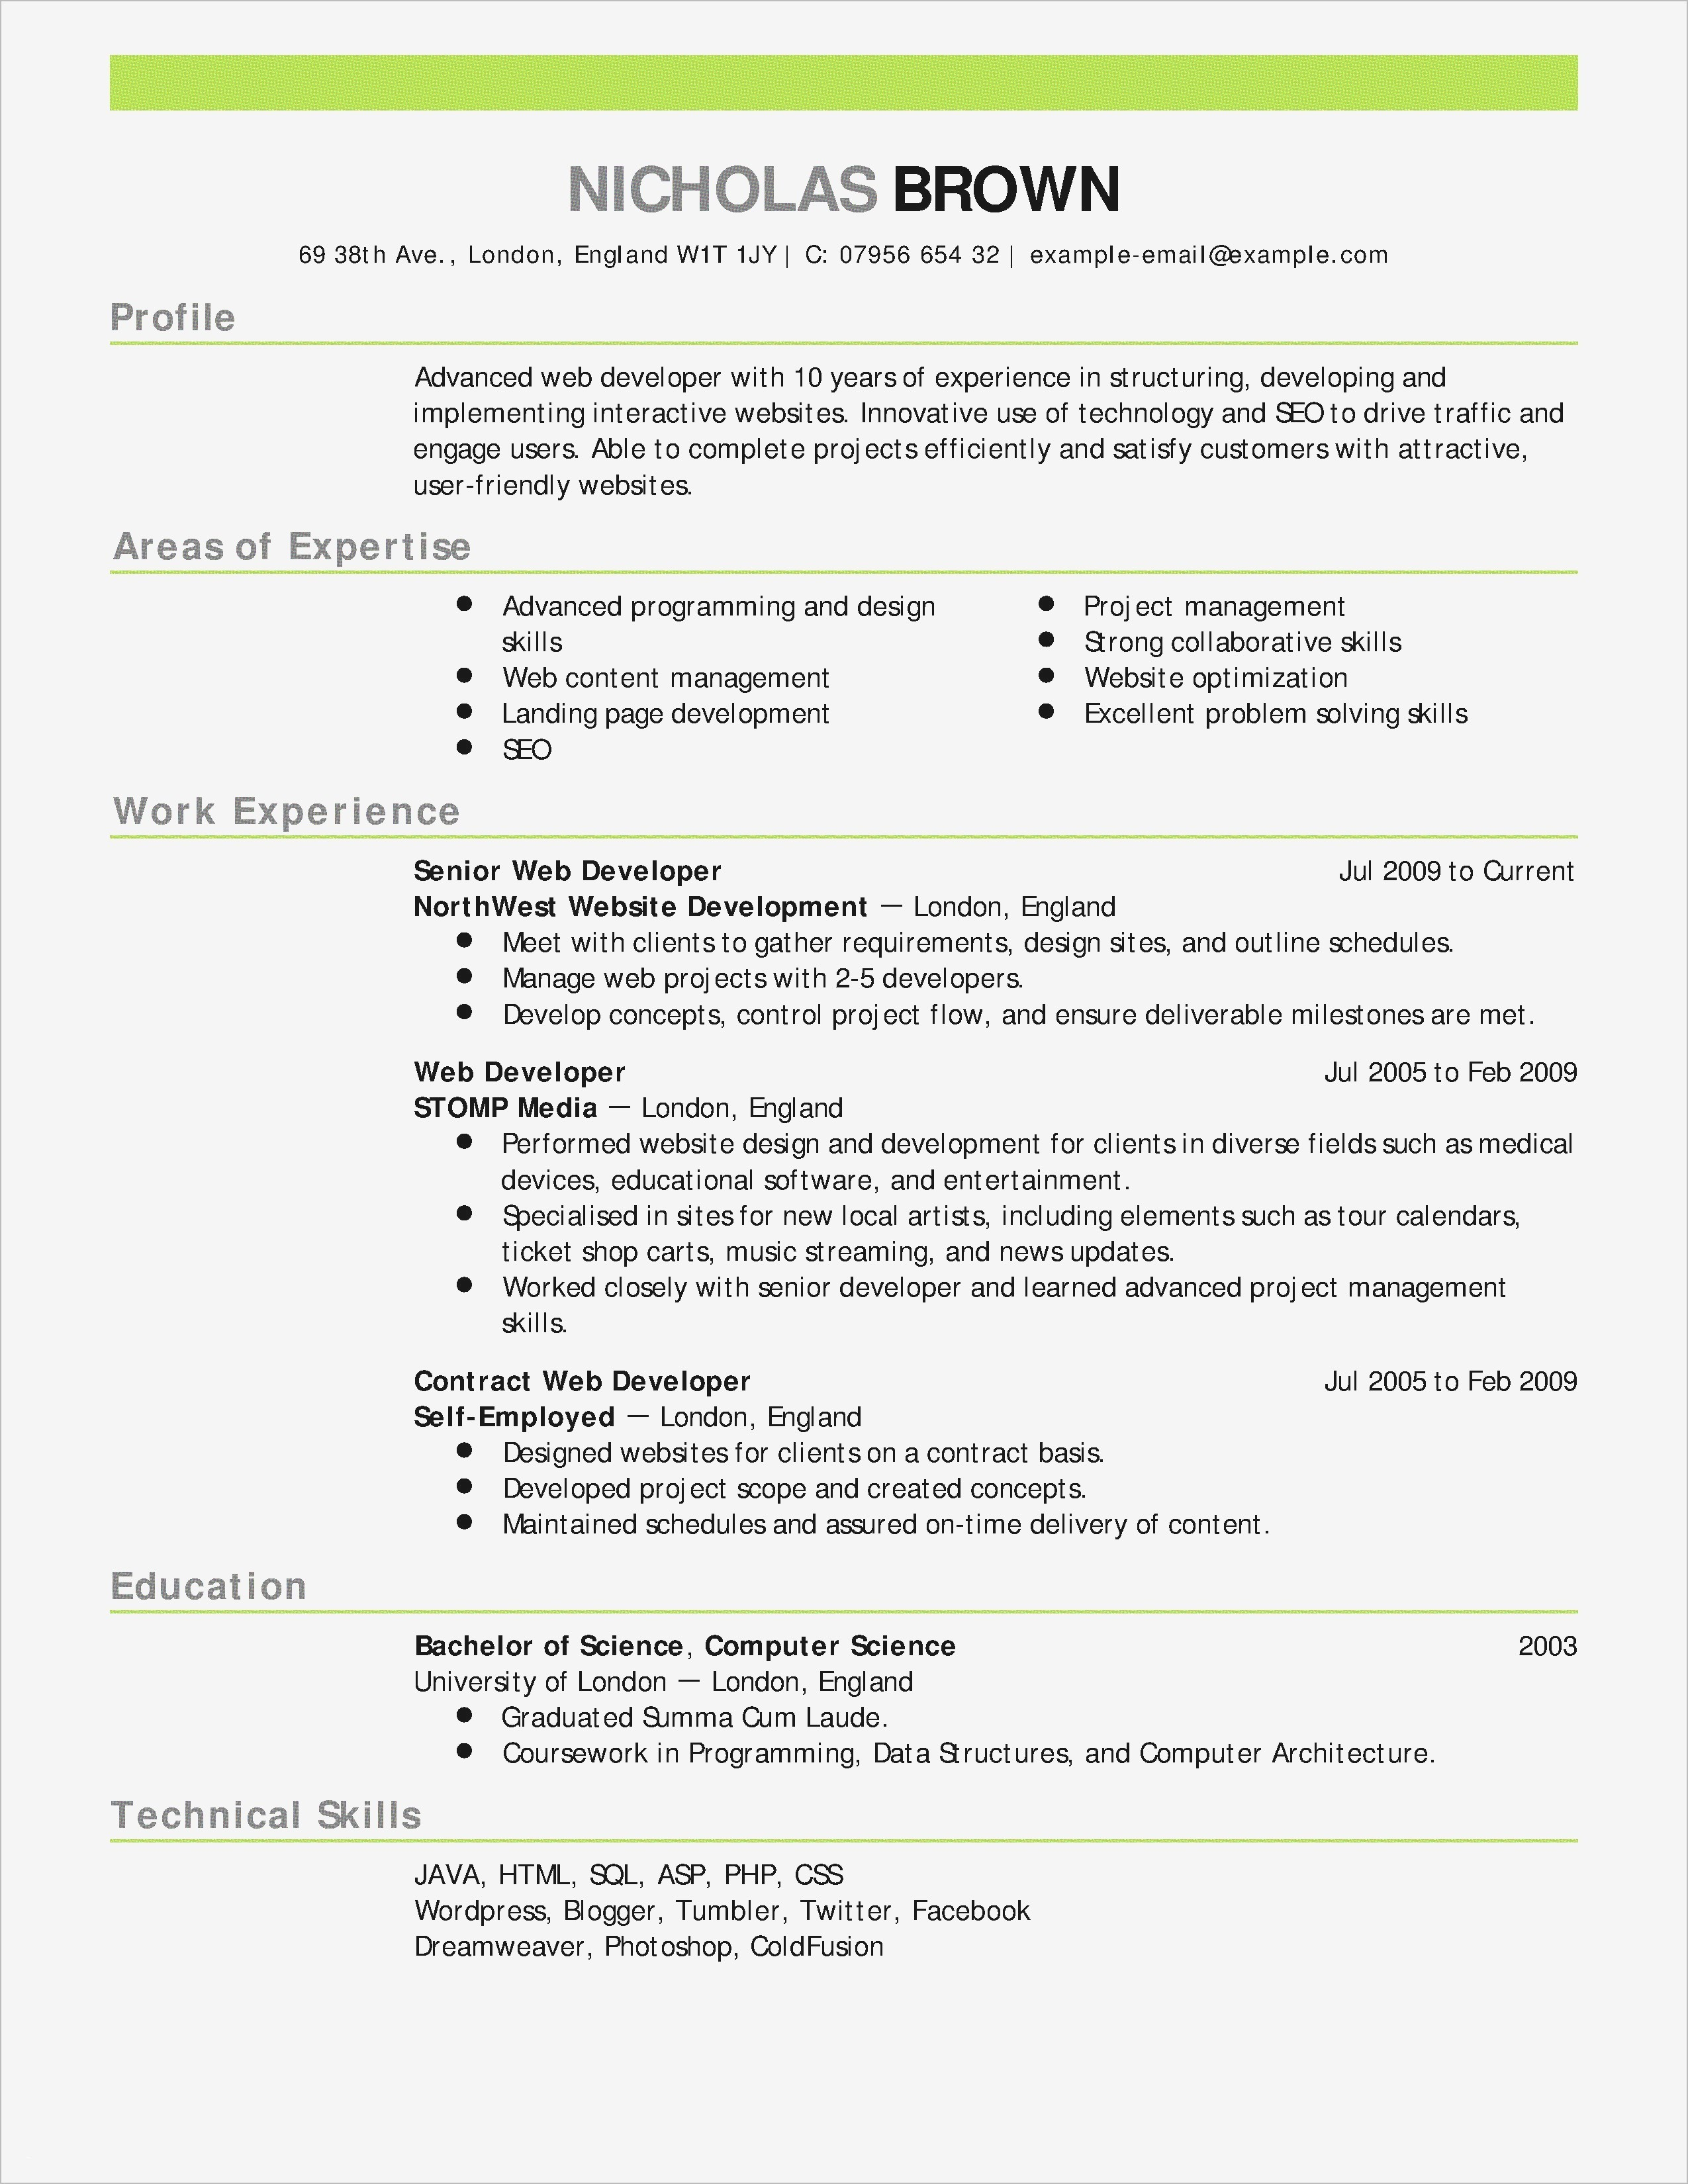 Resume Builder Template Free - Resume Summary Generator Inspirational Resume Builder software